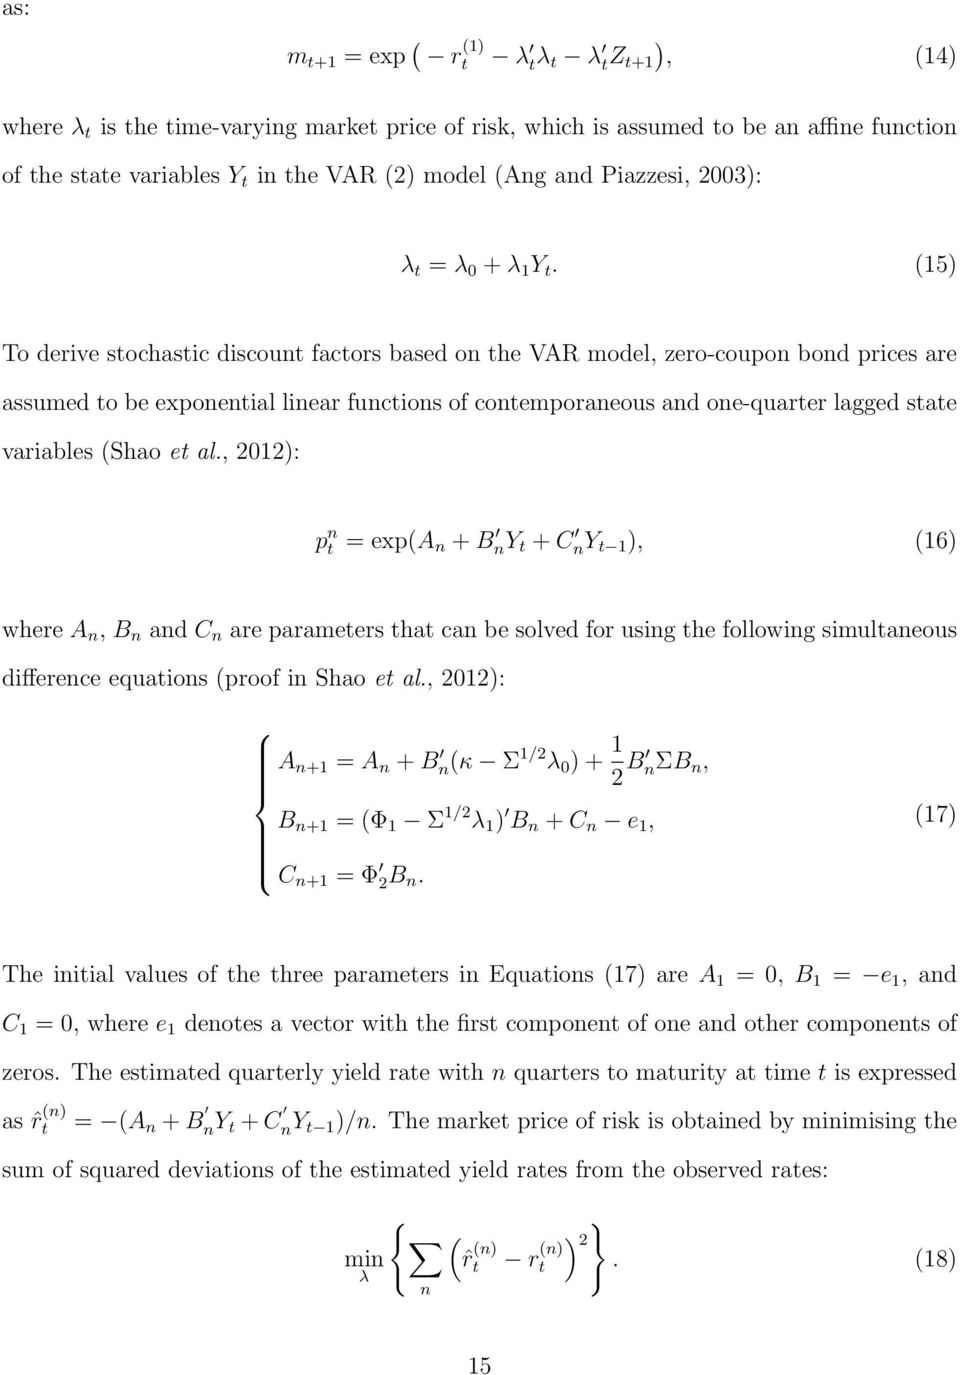 (15) To derive stochastic discount factors based on the VAR model, zero-coupon bond prices are assumed to be exponential linear functions of contemporaneous and one-quarter lagged state variables